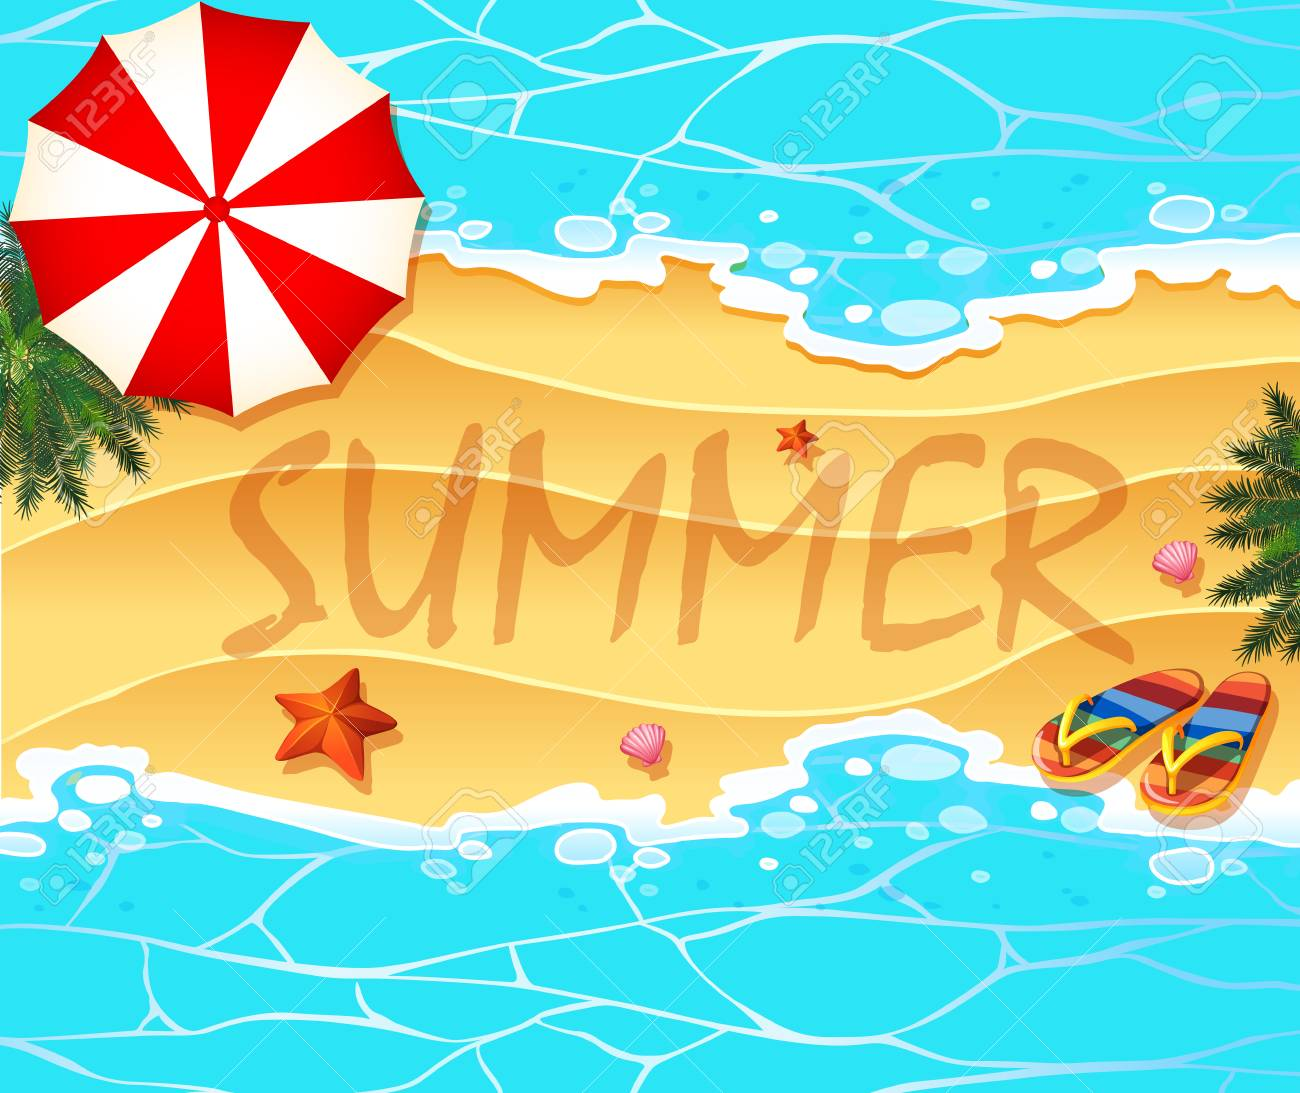 Summer theme background wtih beach and sea illustration.